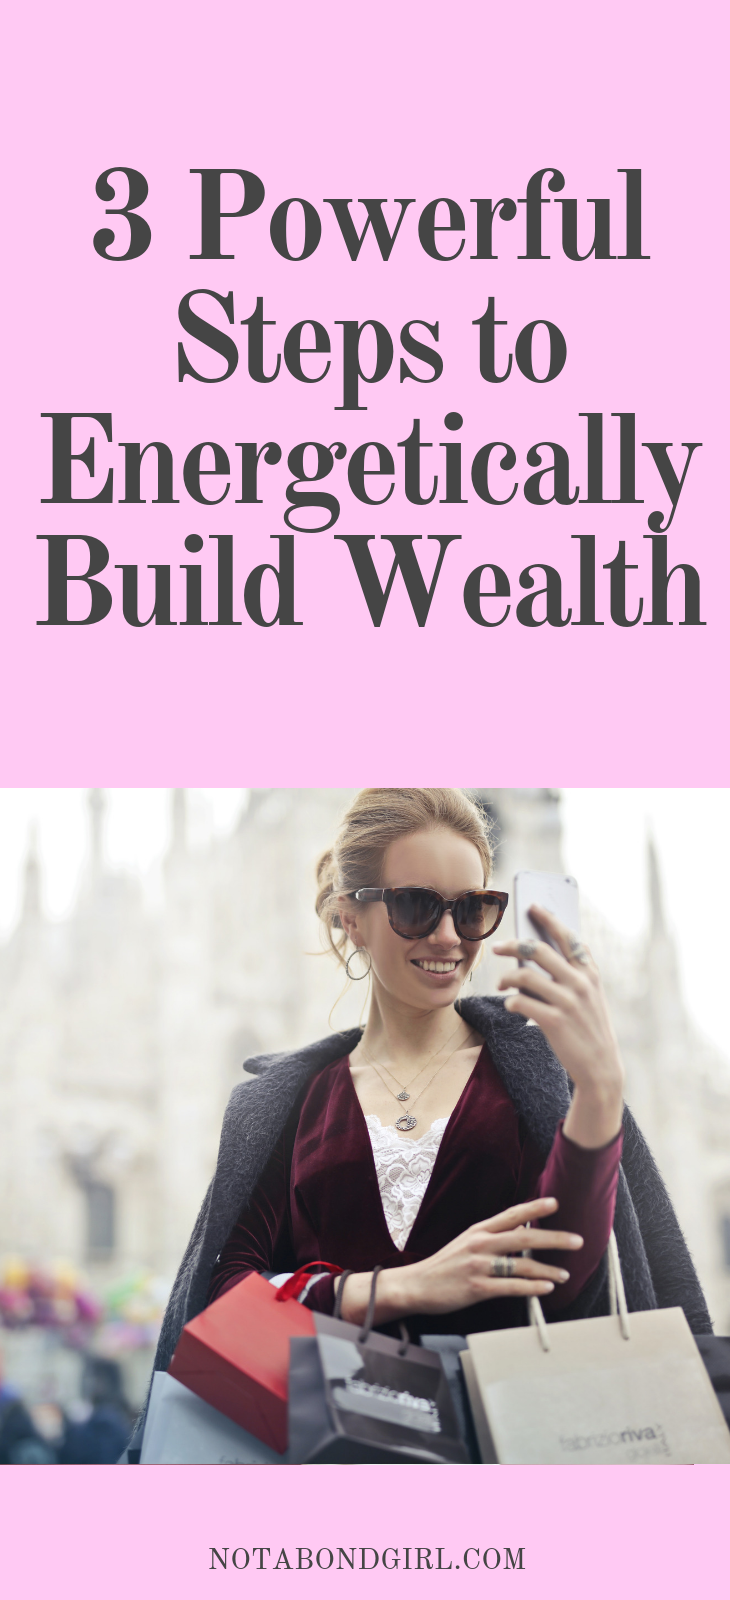 3 Powerful Steps to Energetically Build Wealth #retirement #retireearly #financialindependence #job #mindfulliving #financialliteracy #moneyaffirmation #moneymantra #loa #mindset #inspiration #millennial #motivation #moneysaving #digitalnomad #entrepreneur #girlboss #bossbabe #womeninbiz #worklife #career #money #finance #financialplanning #financialgoal #debtfree #moneygoal #financialfreedom #earlyretirement #financialindependenceretireearly #FIREMovement #holisticwealth